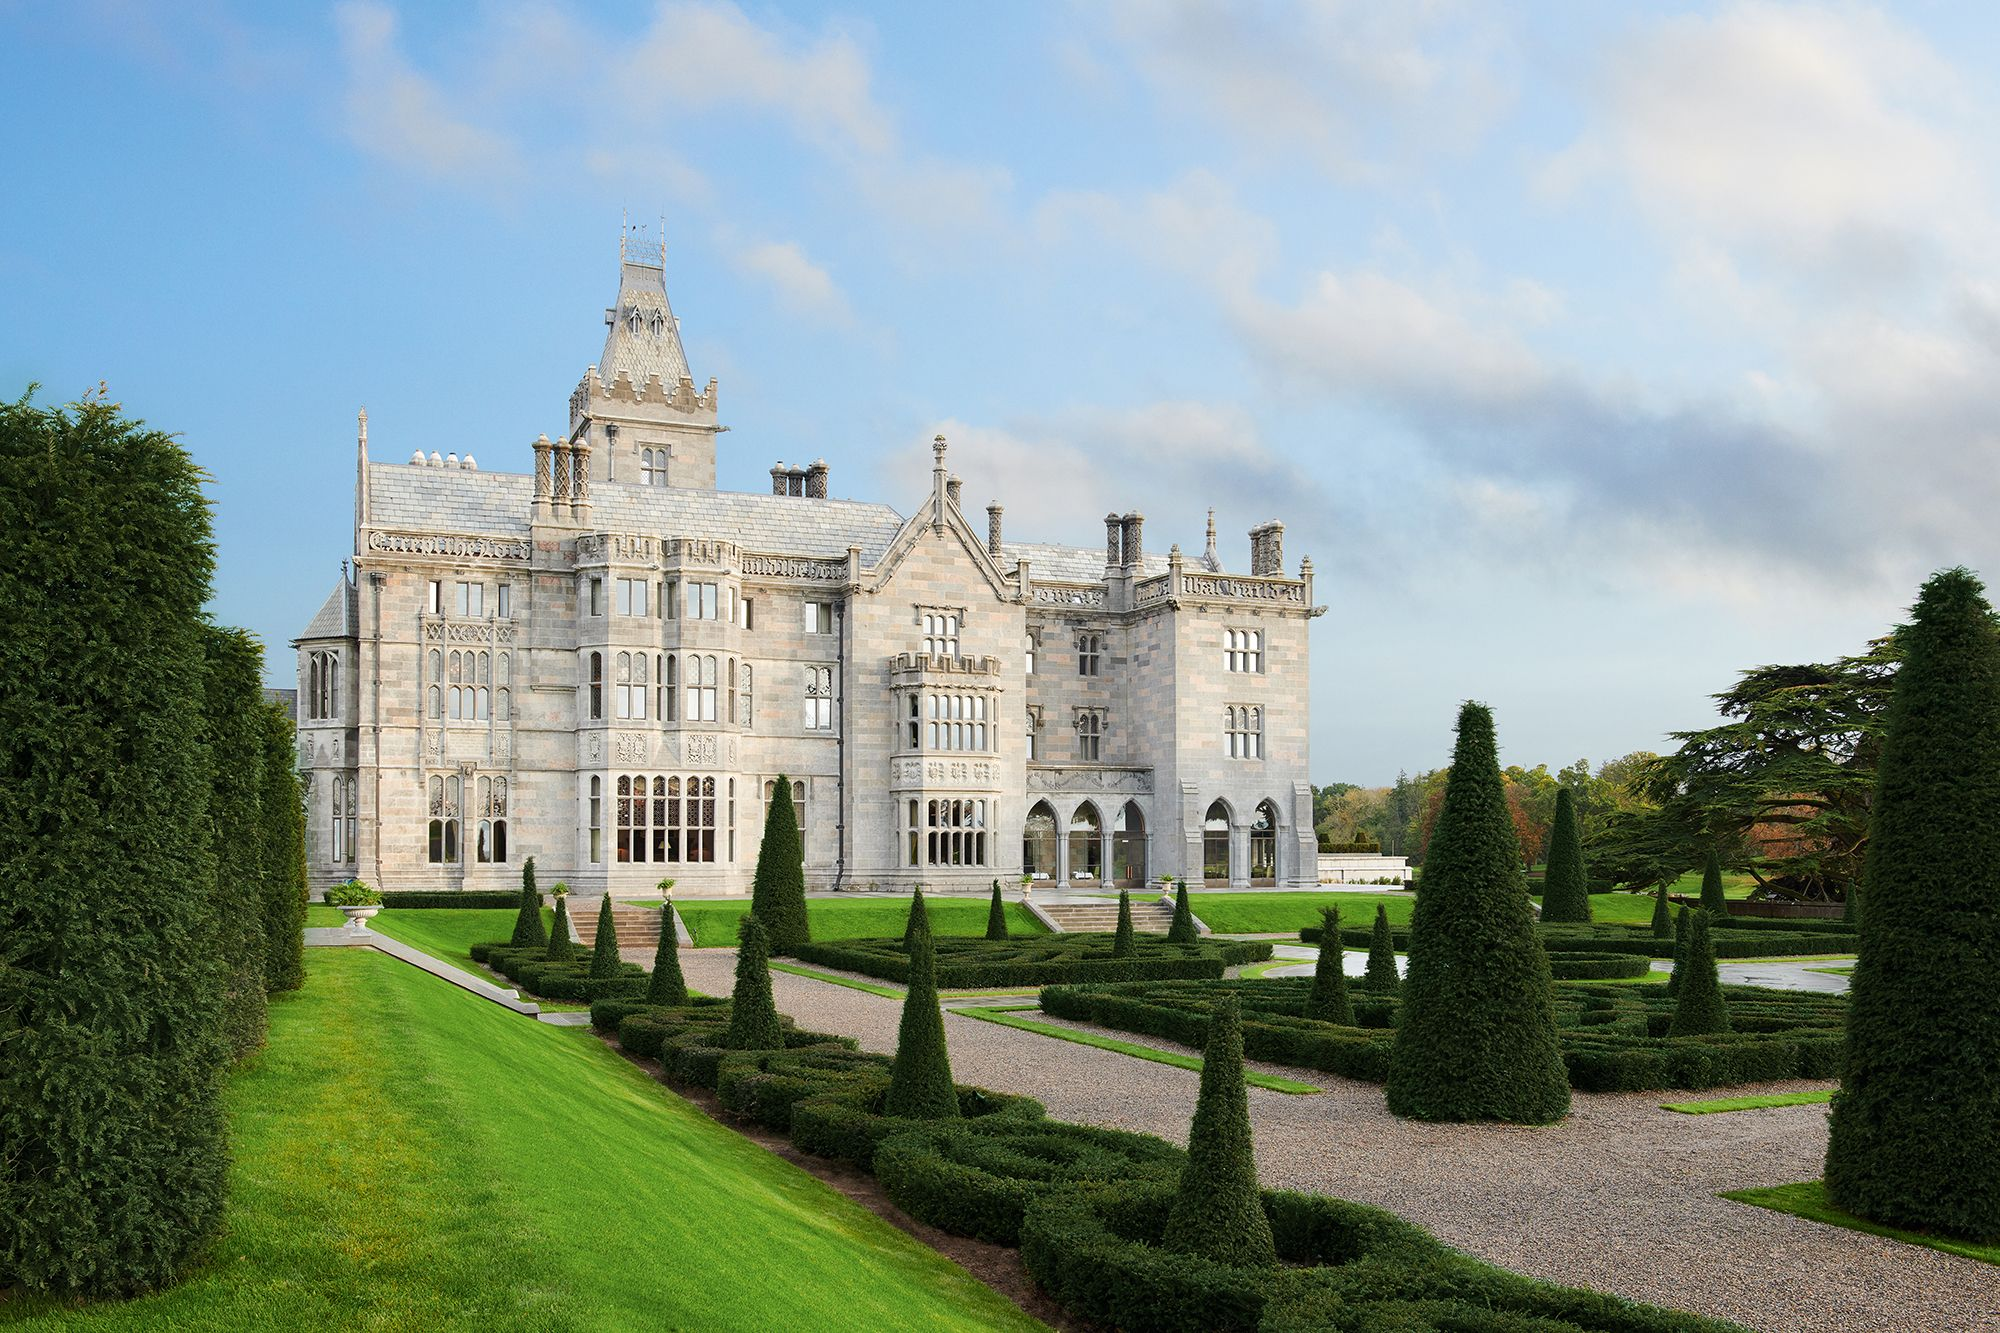 The 19th-century neo-Gothic castle-turnedluxury hotel, Adare Manor, sits amid lush woodlands, walled gardens and medieval ruins